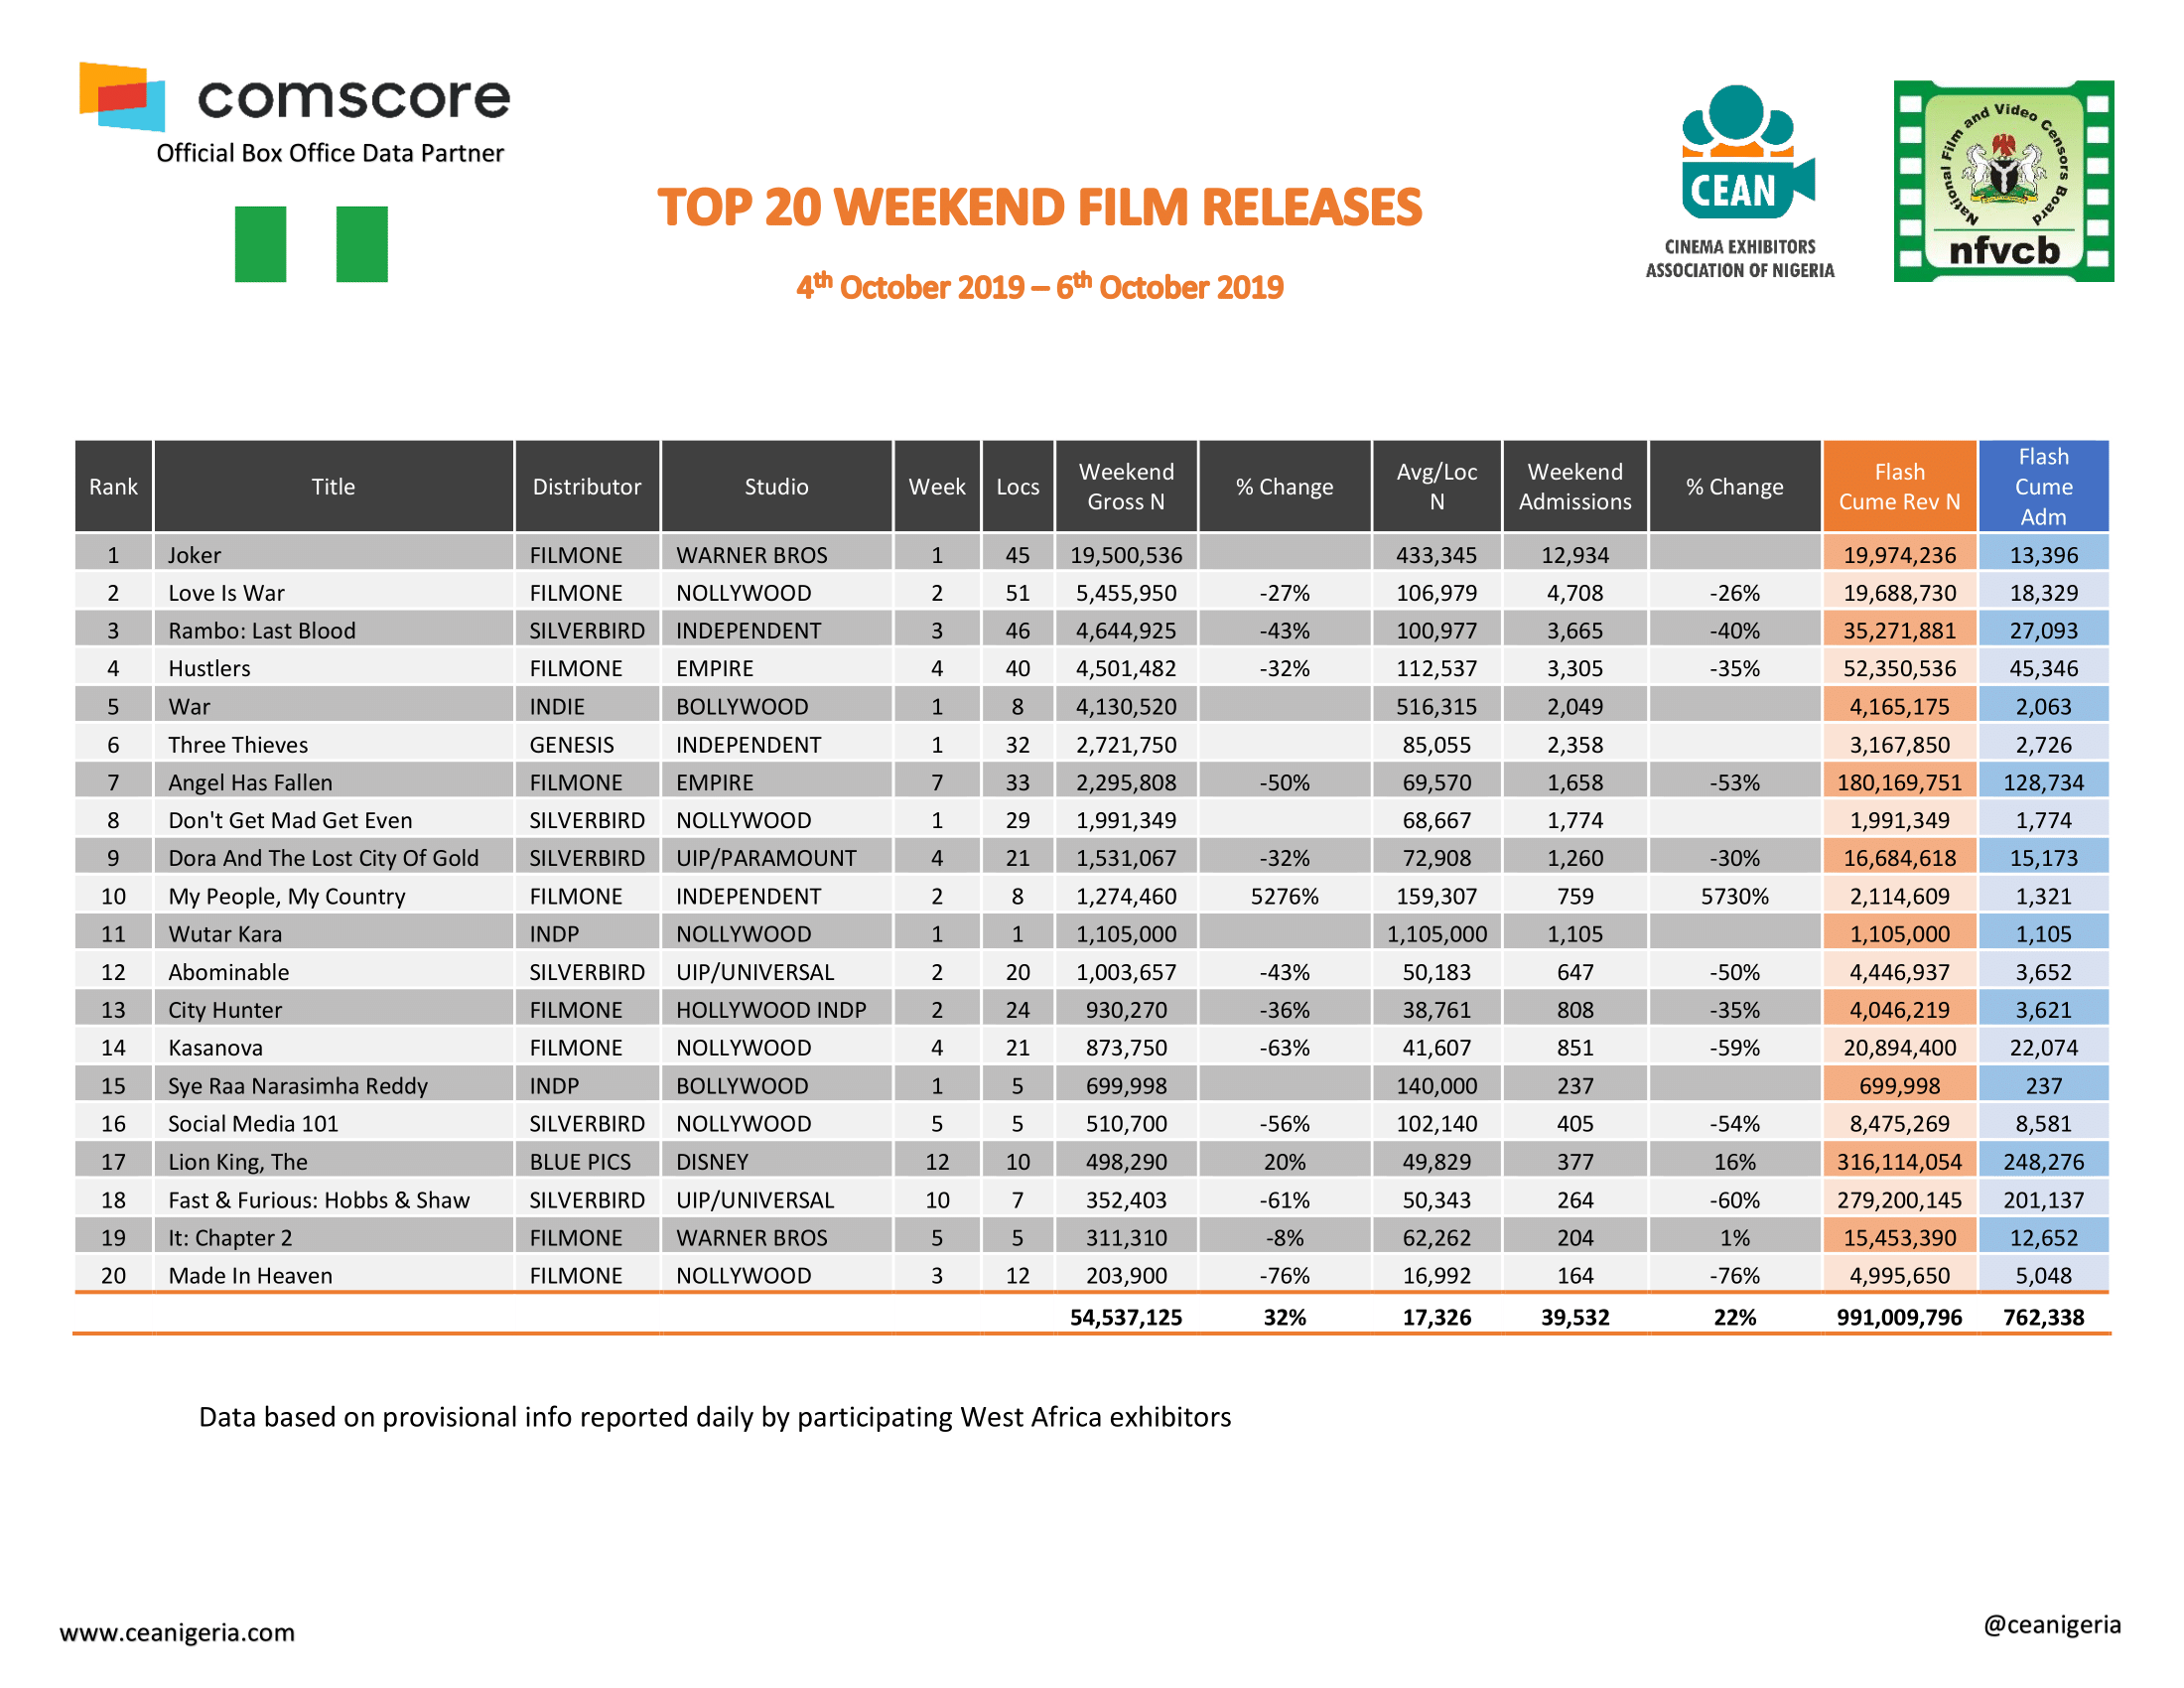 Top 20 Films 4th 6th Oct 2019 1